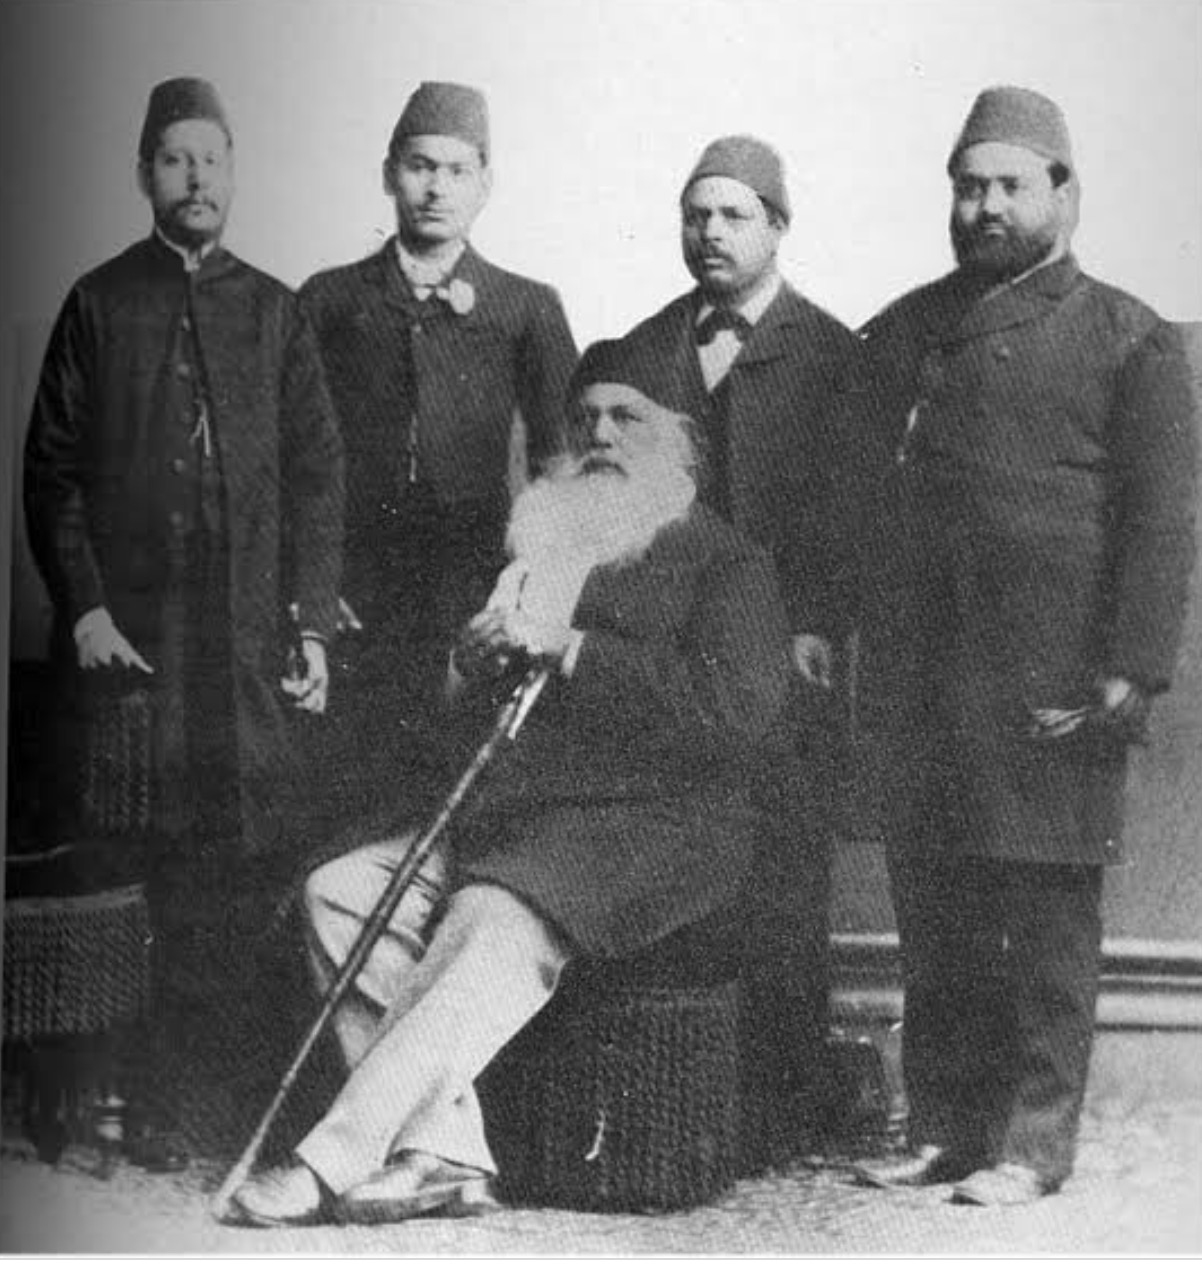 Secularisation without secularism: 19th-century Muslim reformists in India attempted to relegate Islamic rituals to the private space and bring Islam as a political identity-marker in public sphere.